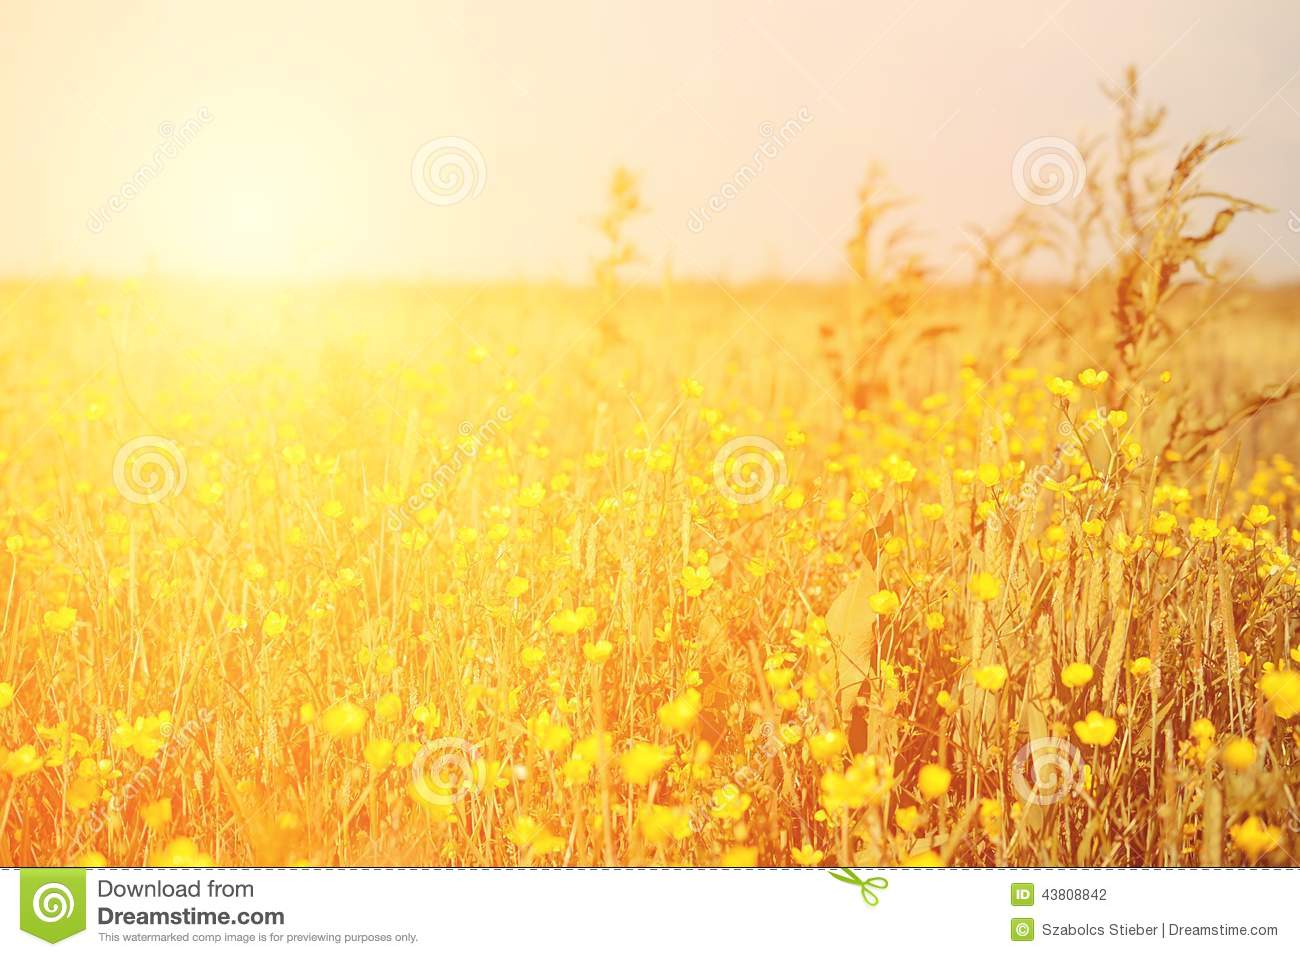 Vintage Yellow Flower Field Stock Photo - Image: 43808842